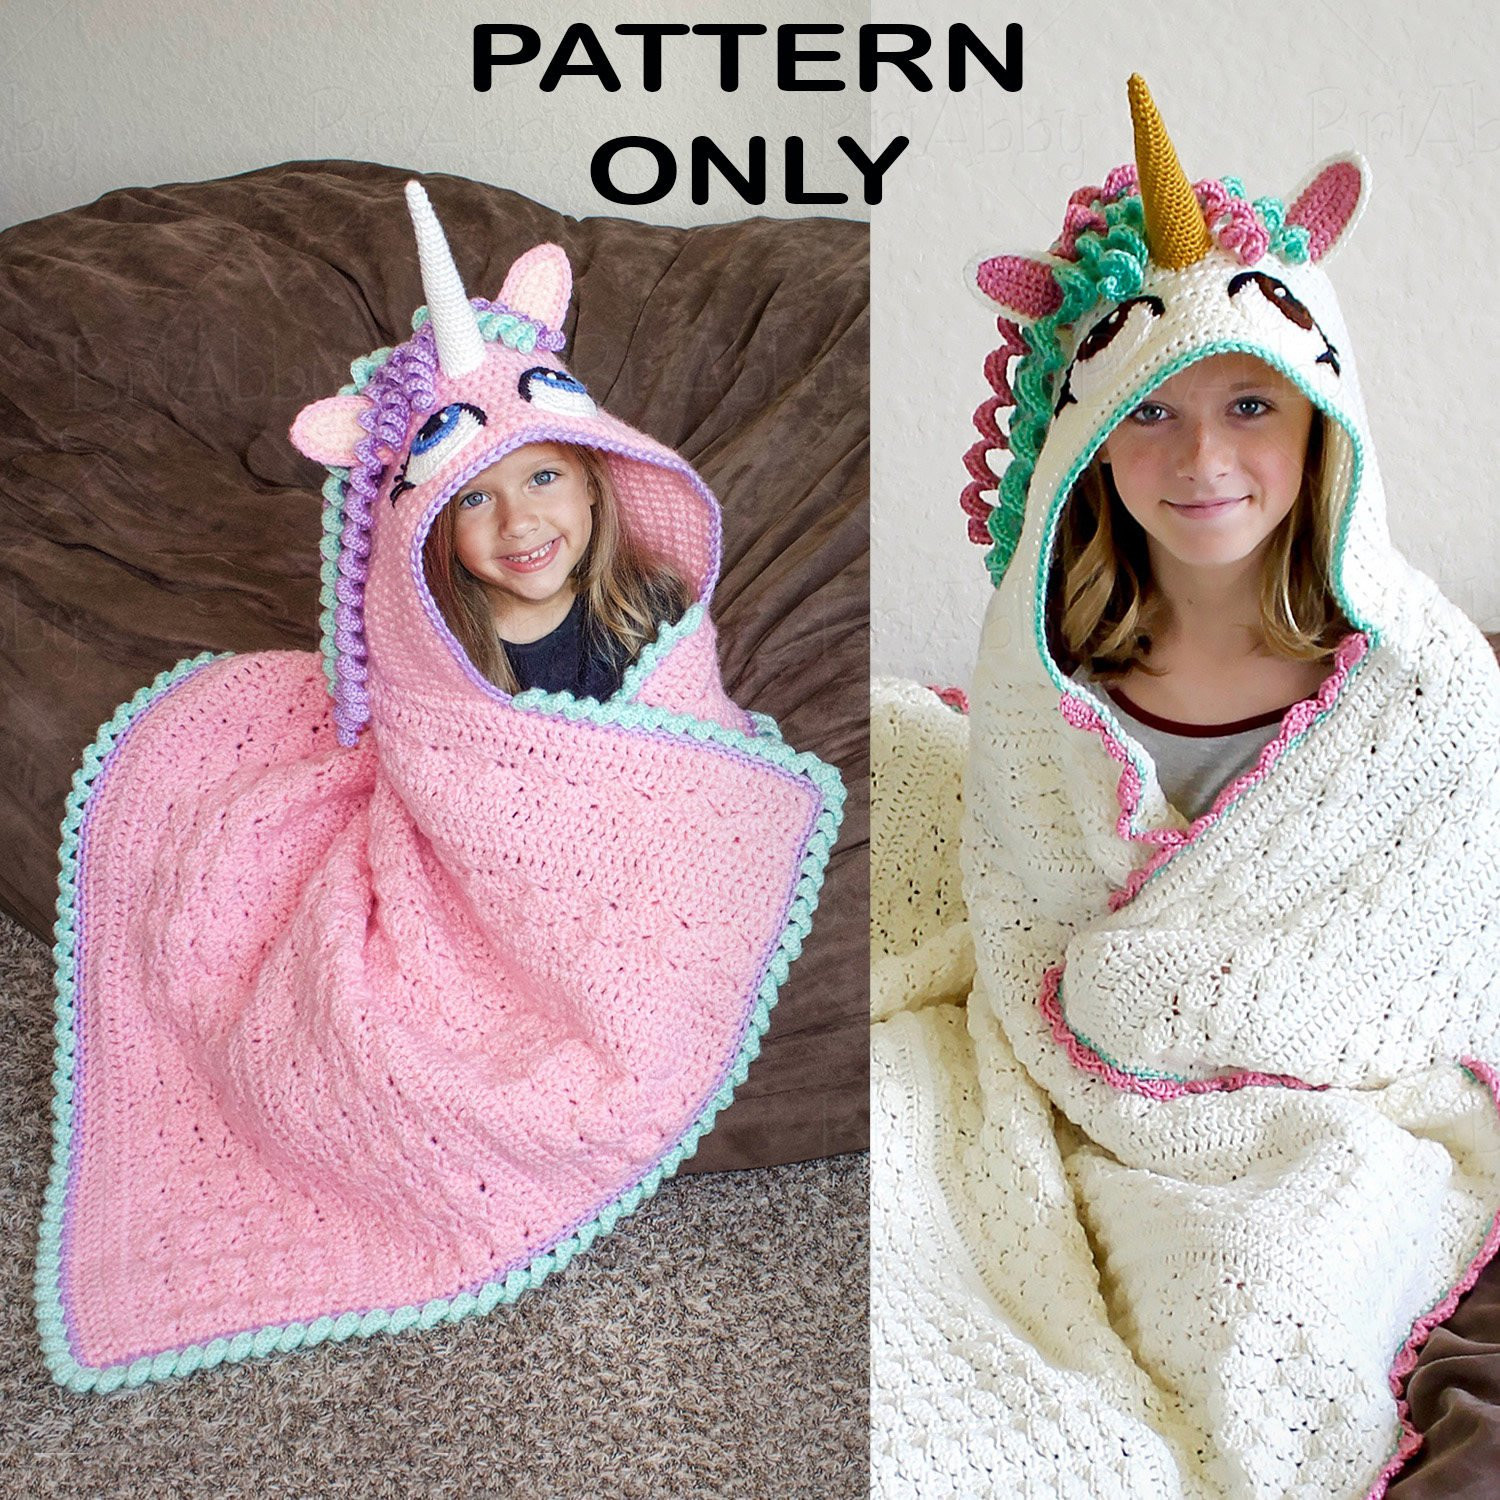 Crochet Unicorn Luxury Crochet Pattern Hooded Unicorn Blanket Pattern Pdf File Of Charming 42 Pics Crochet Unicorn